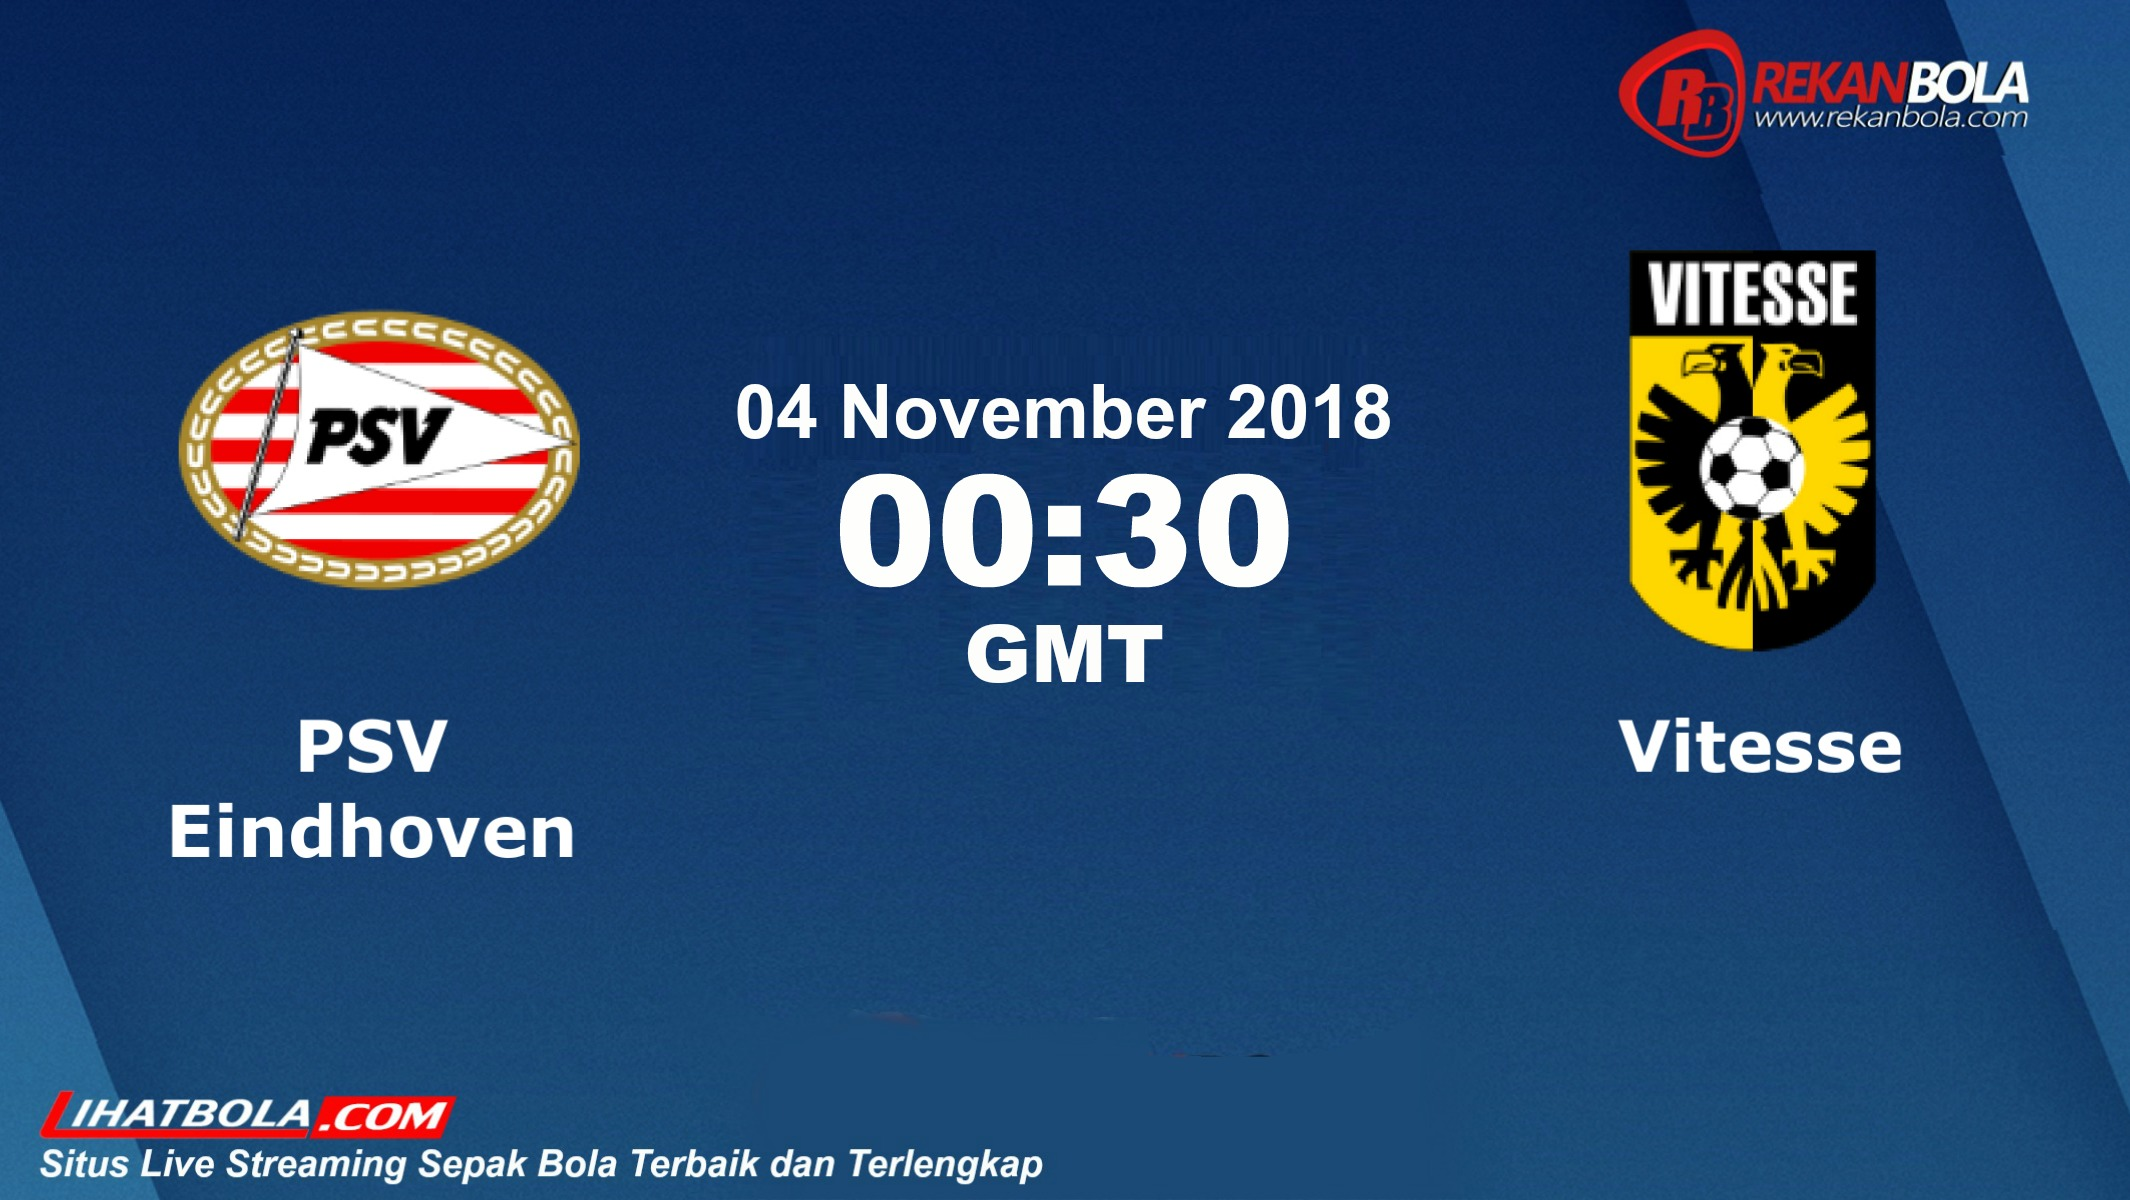 Nonton Siaran Live Streaming PSV Vs Vitesse 04 November 2018